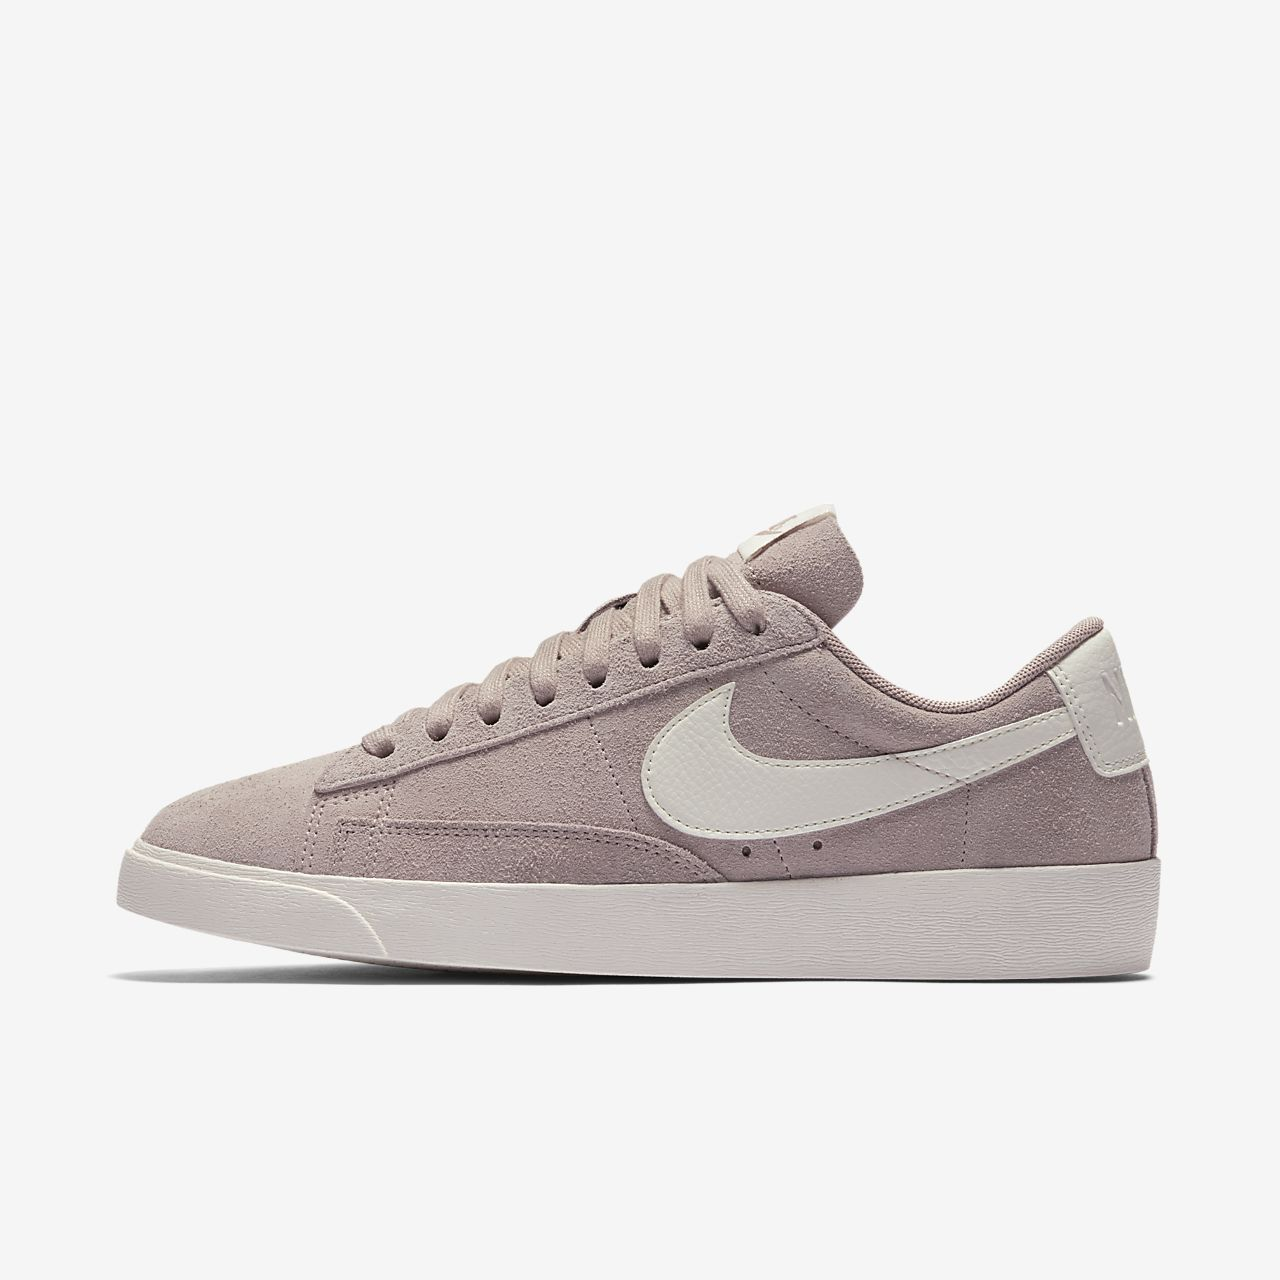 Nike Blazer Low Suede Womens Shoe